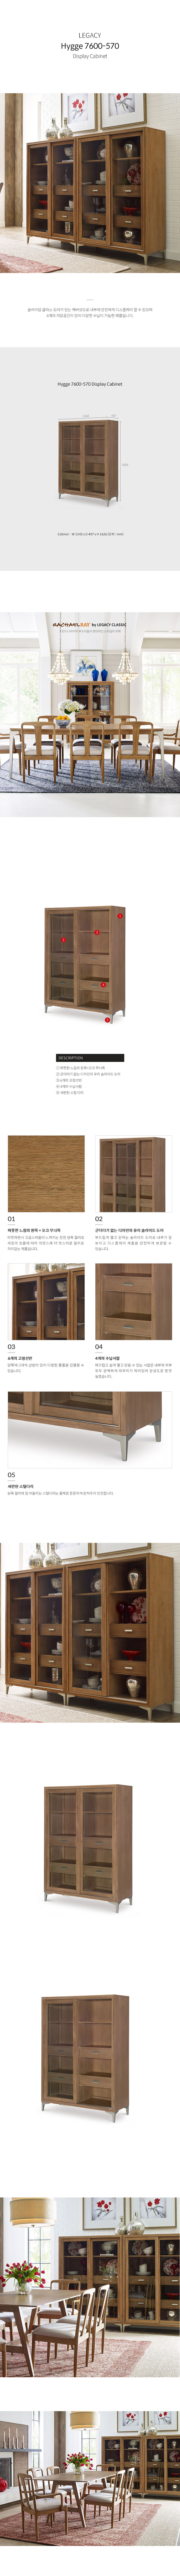 Hygge-7600-570-Display-Cabinet_add.jpg